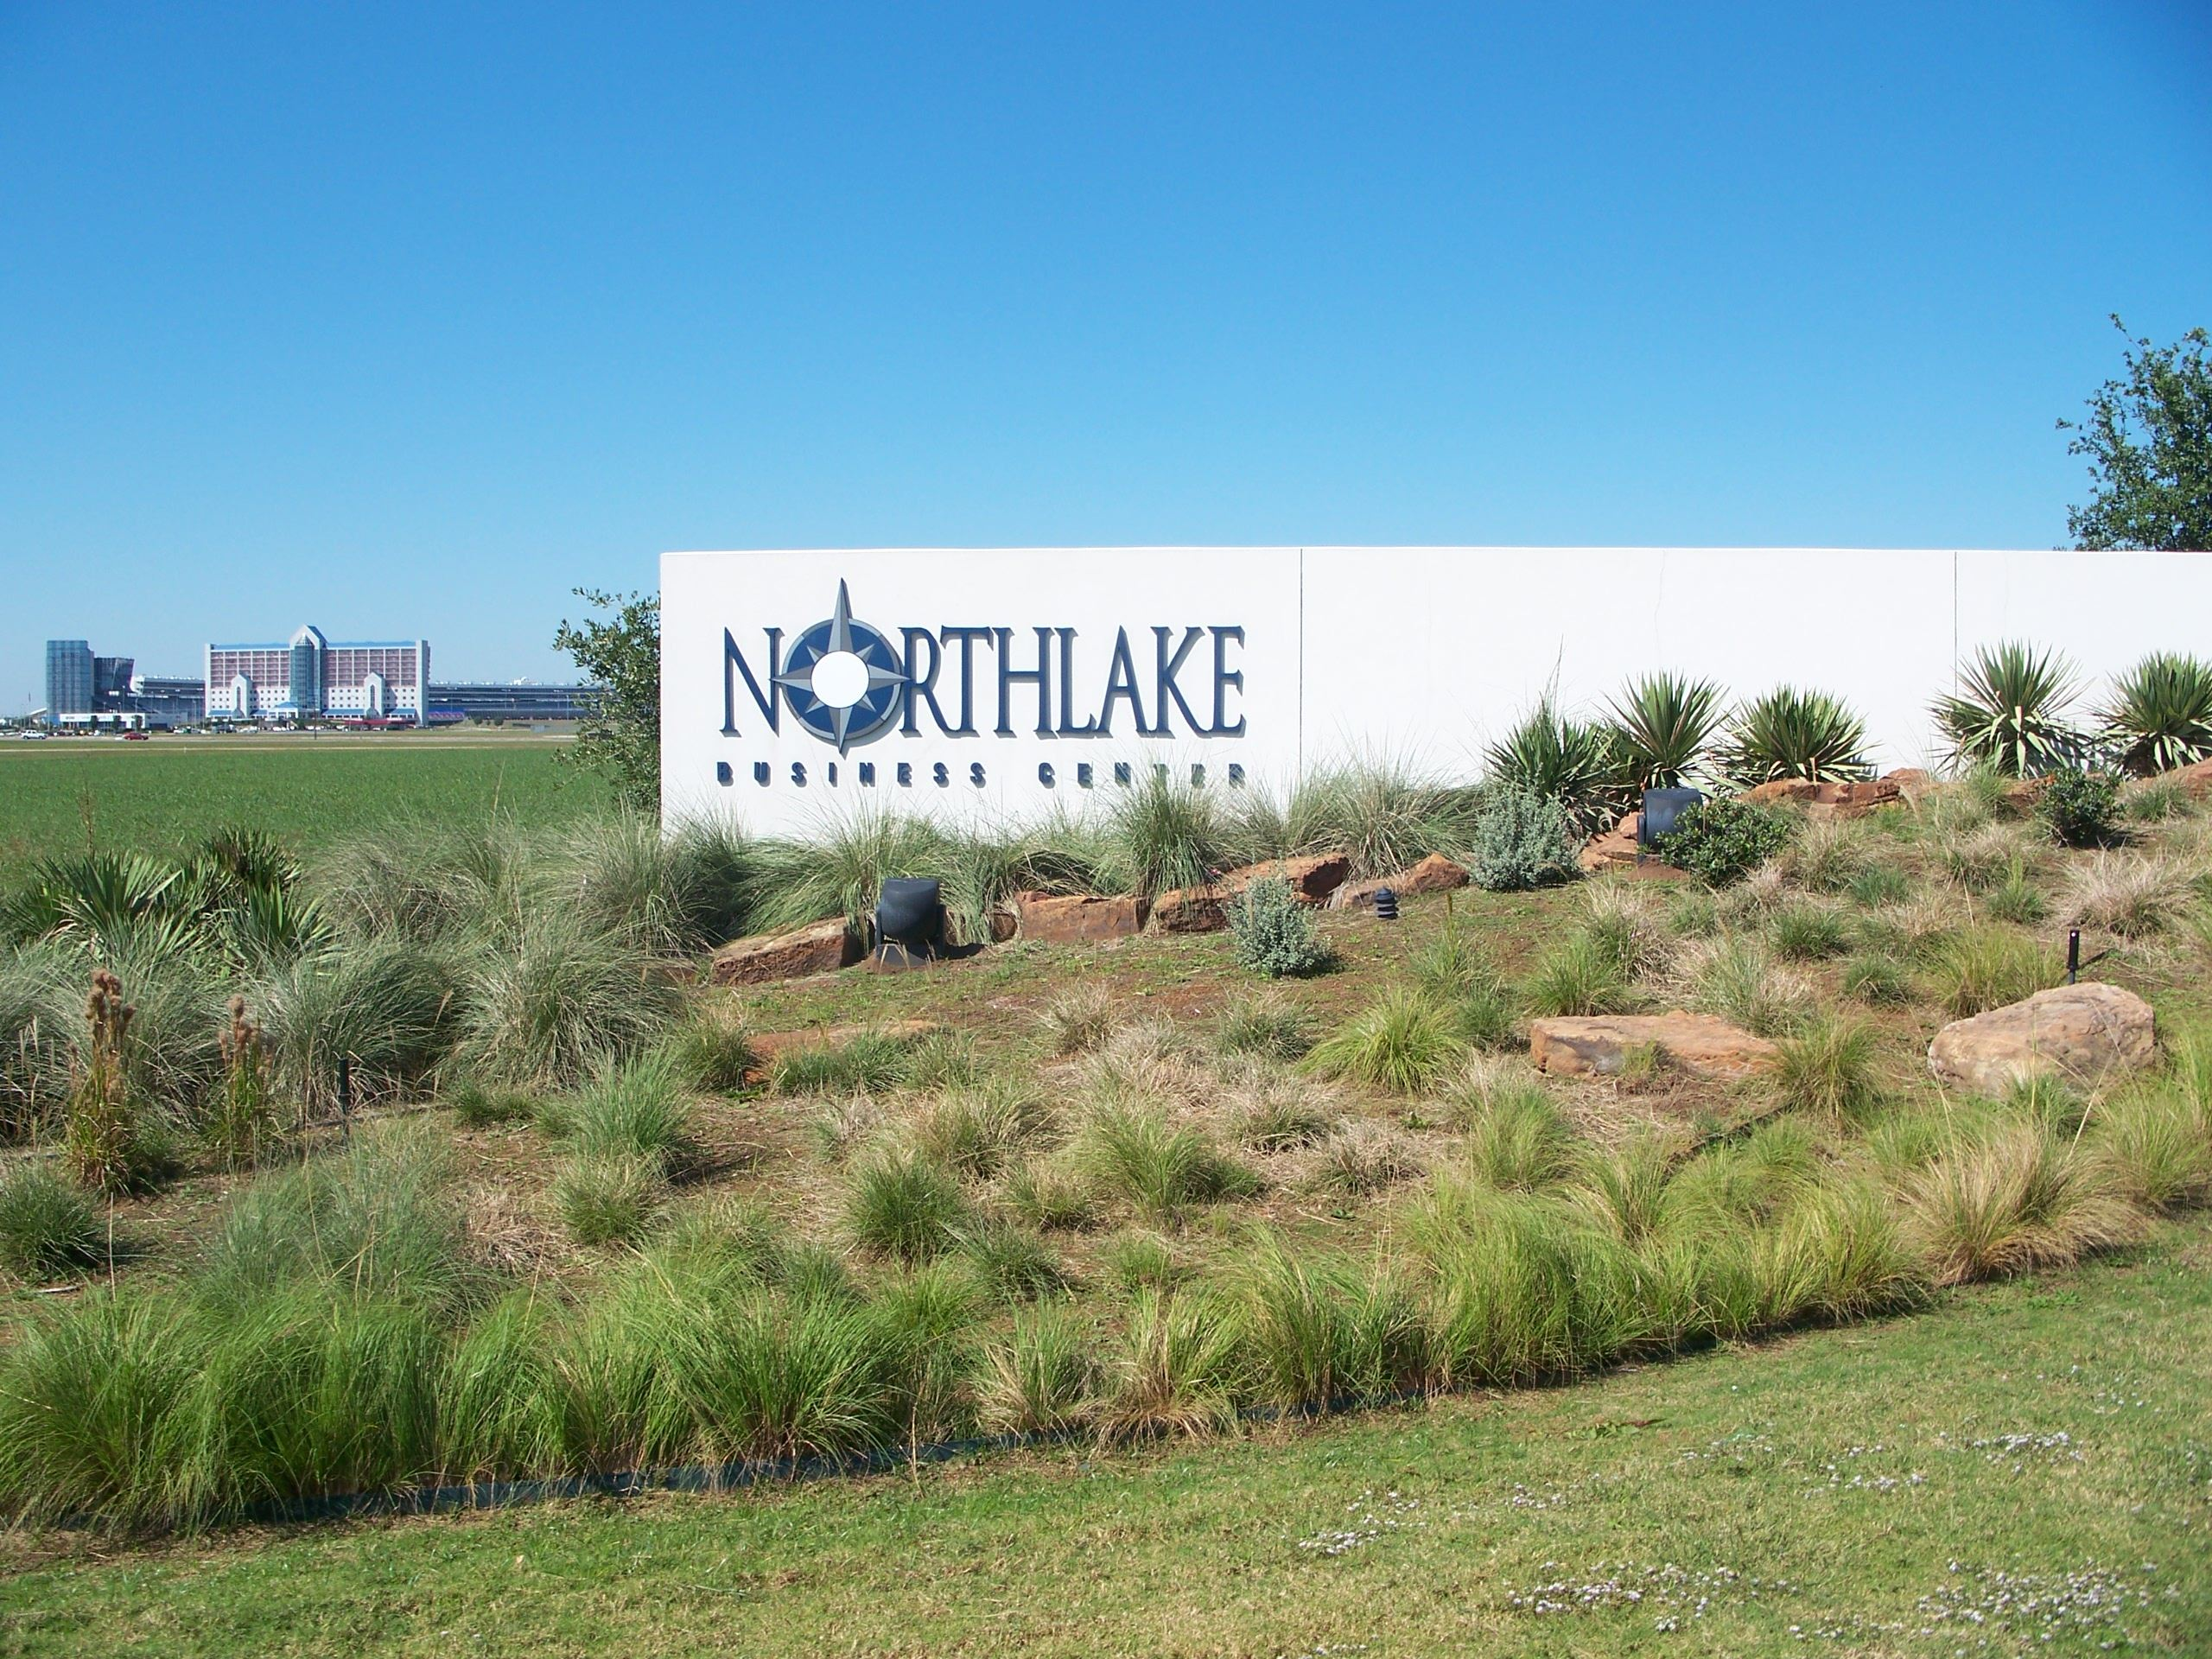 Northlake Business Center Sign